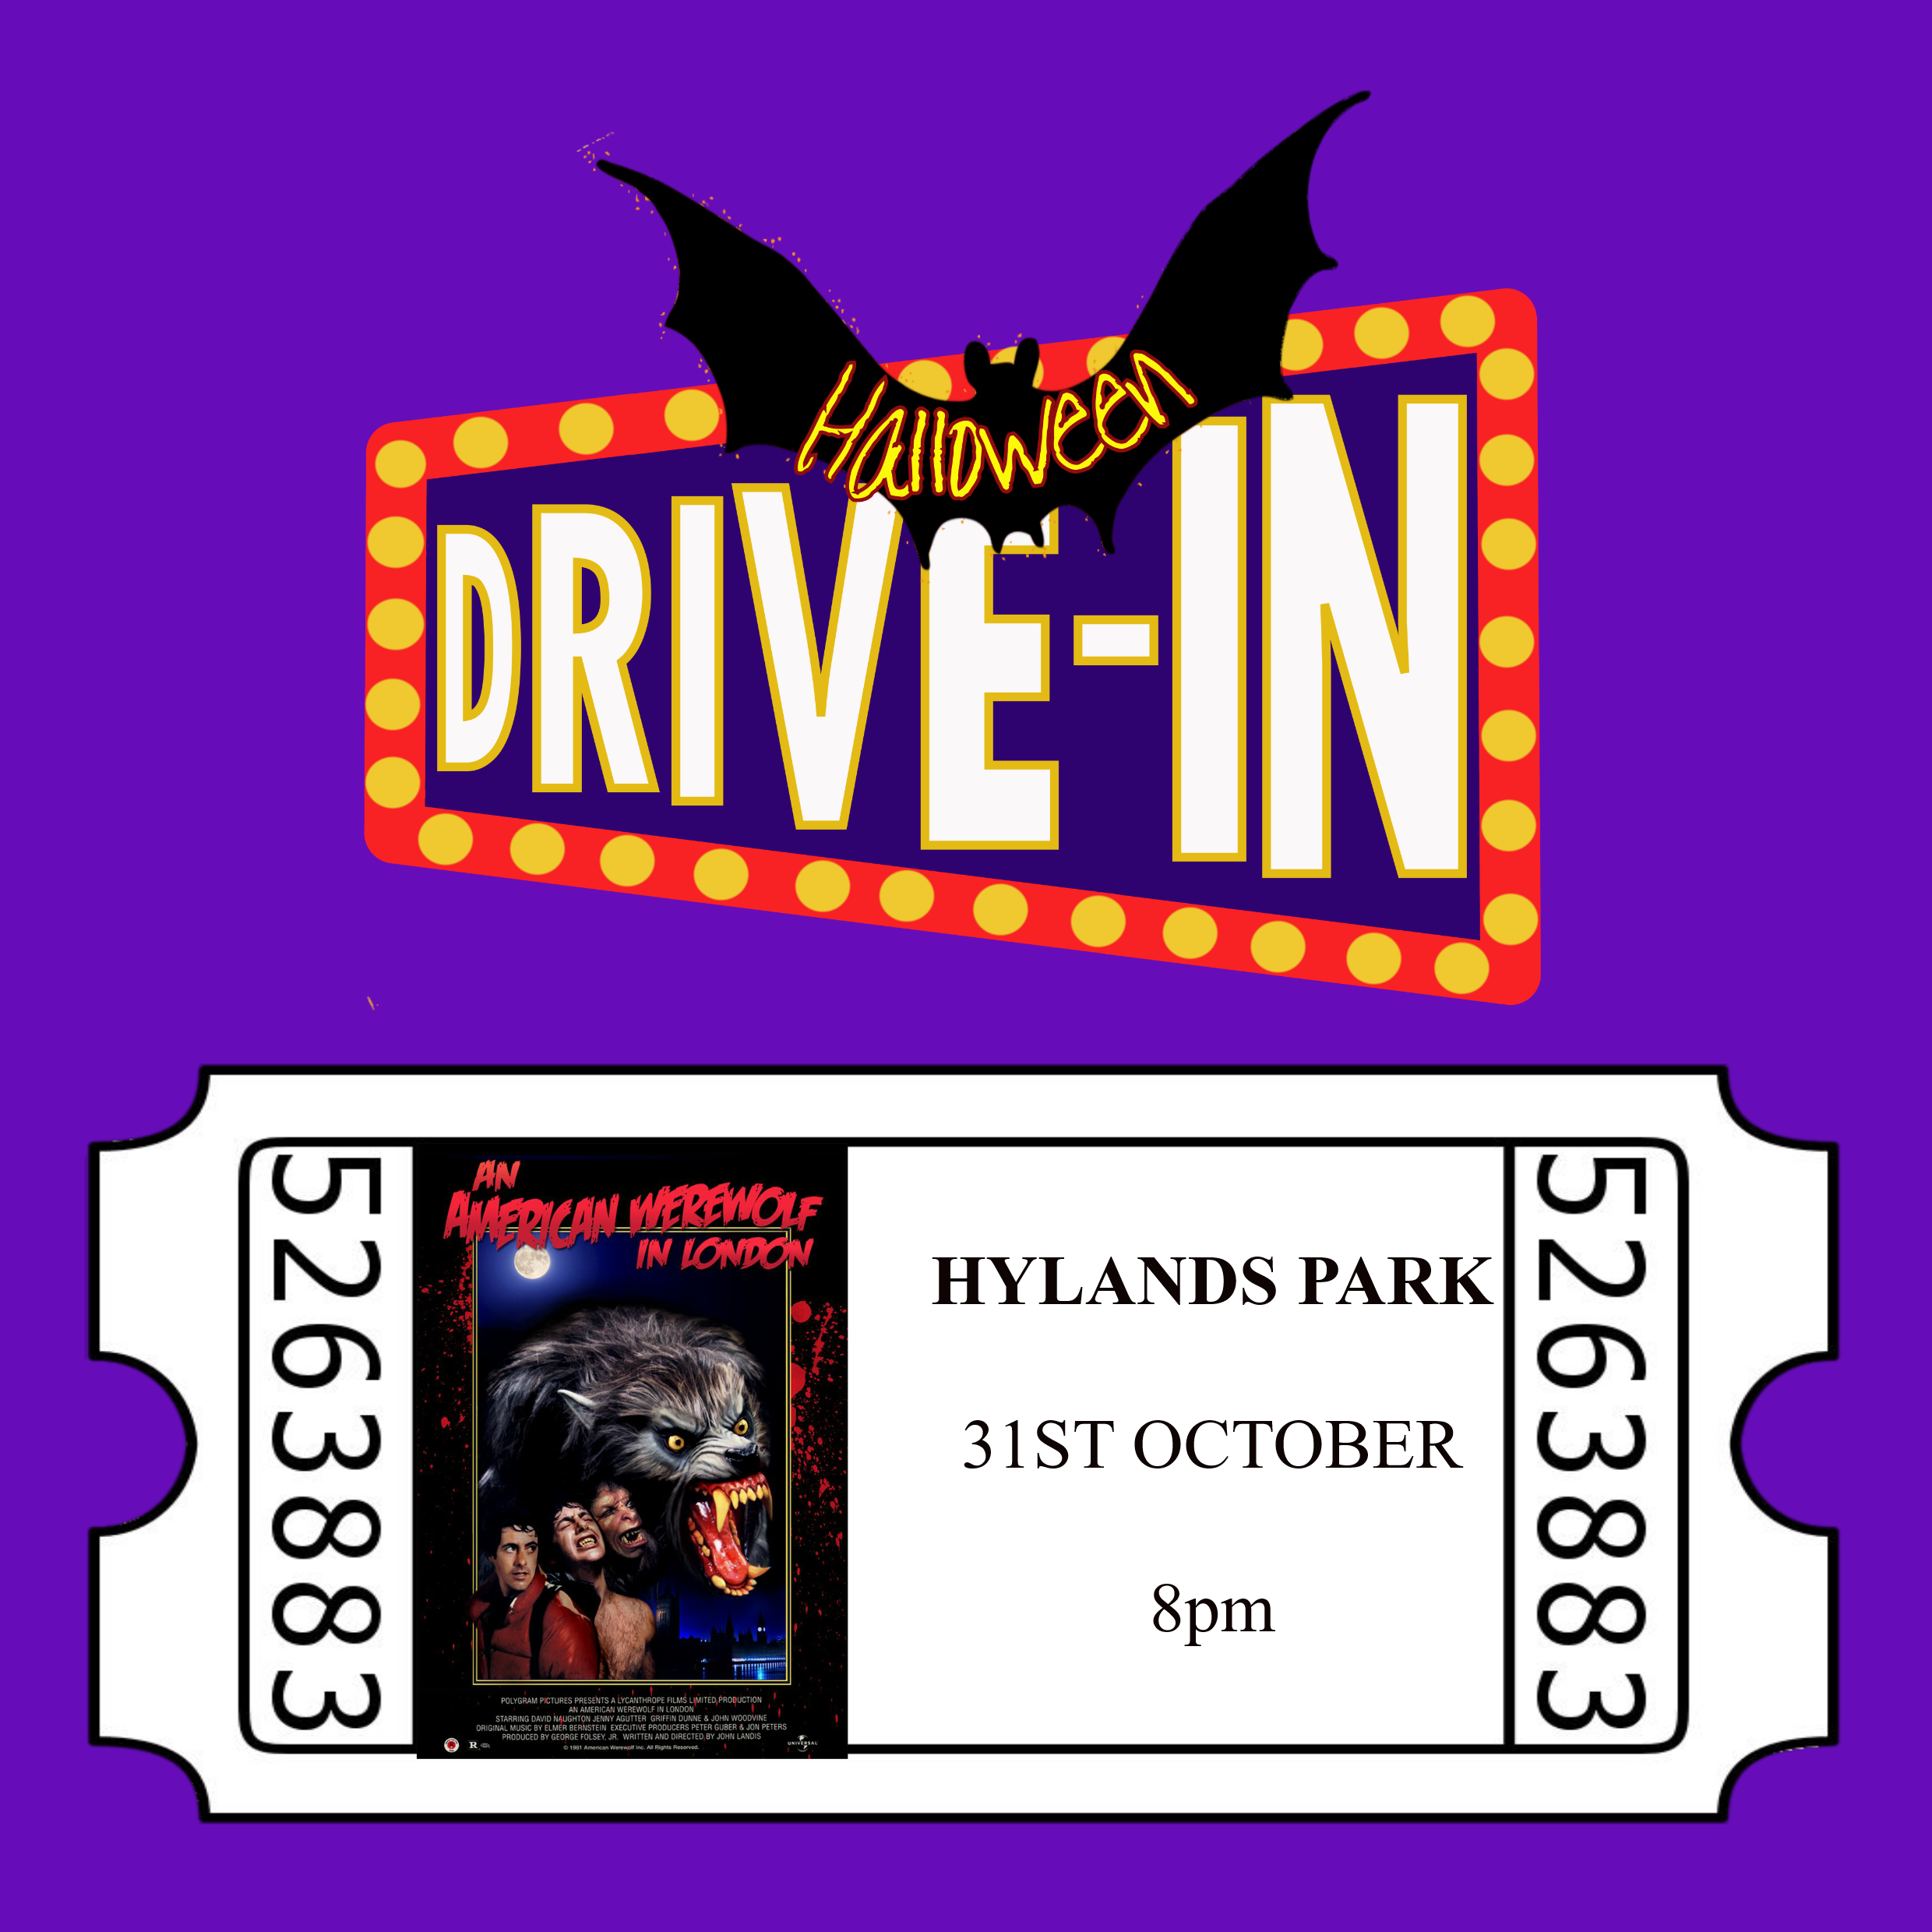 Halloween Drive-In, An American Werewolf in London 00274